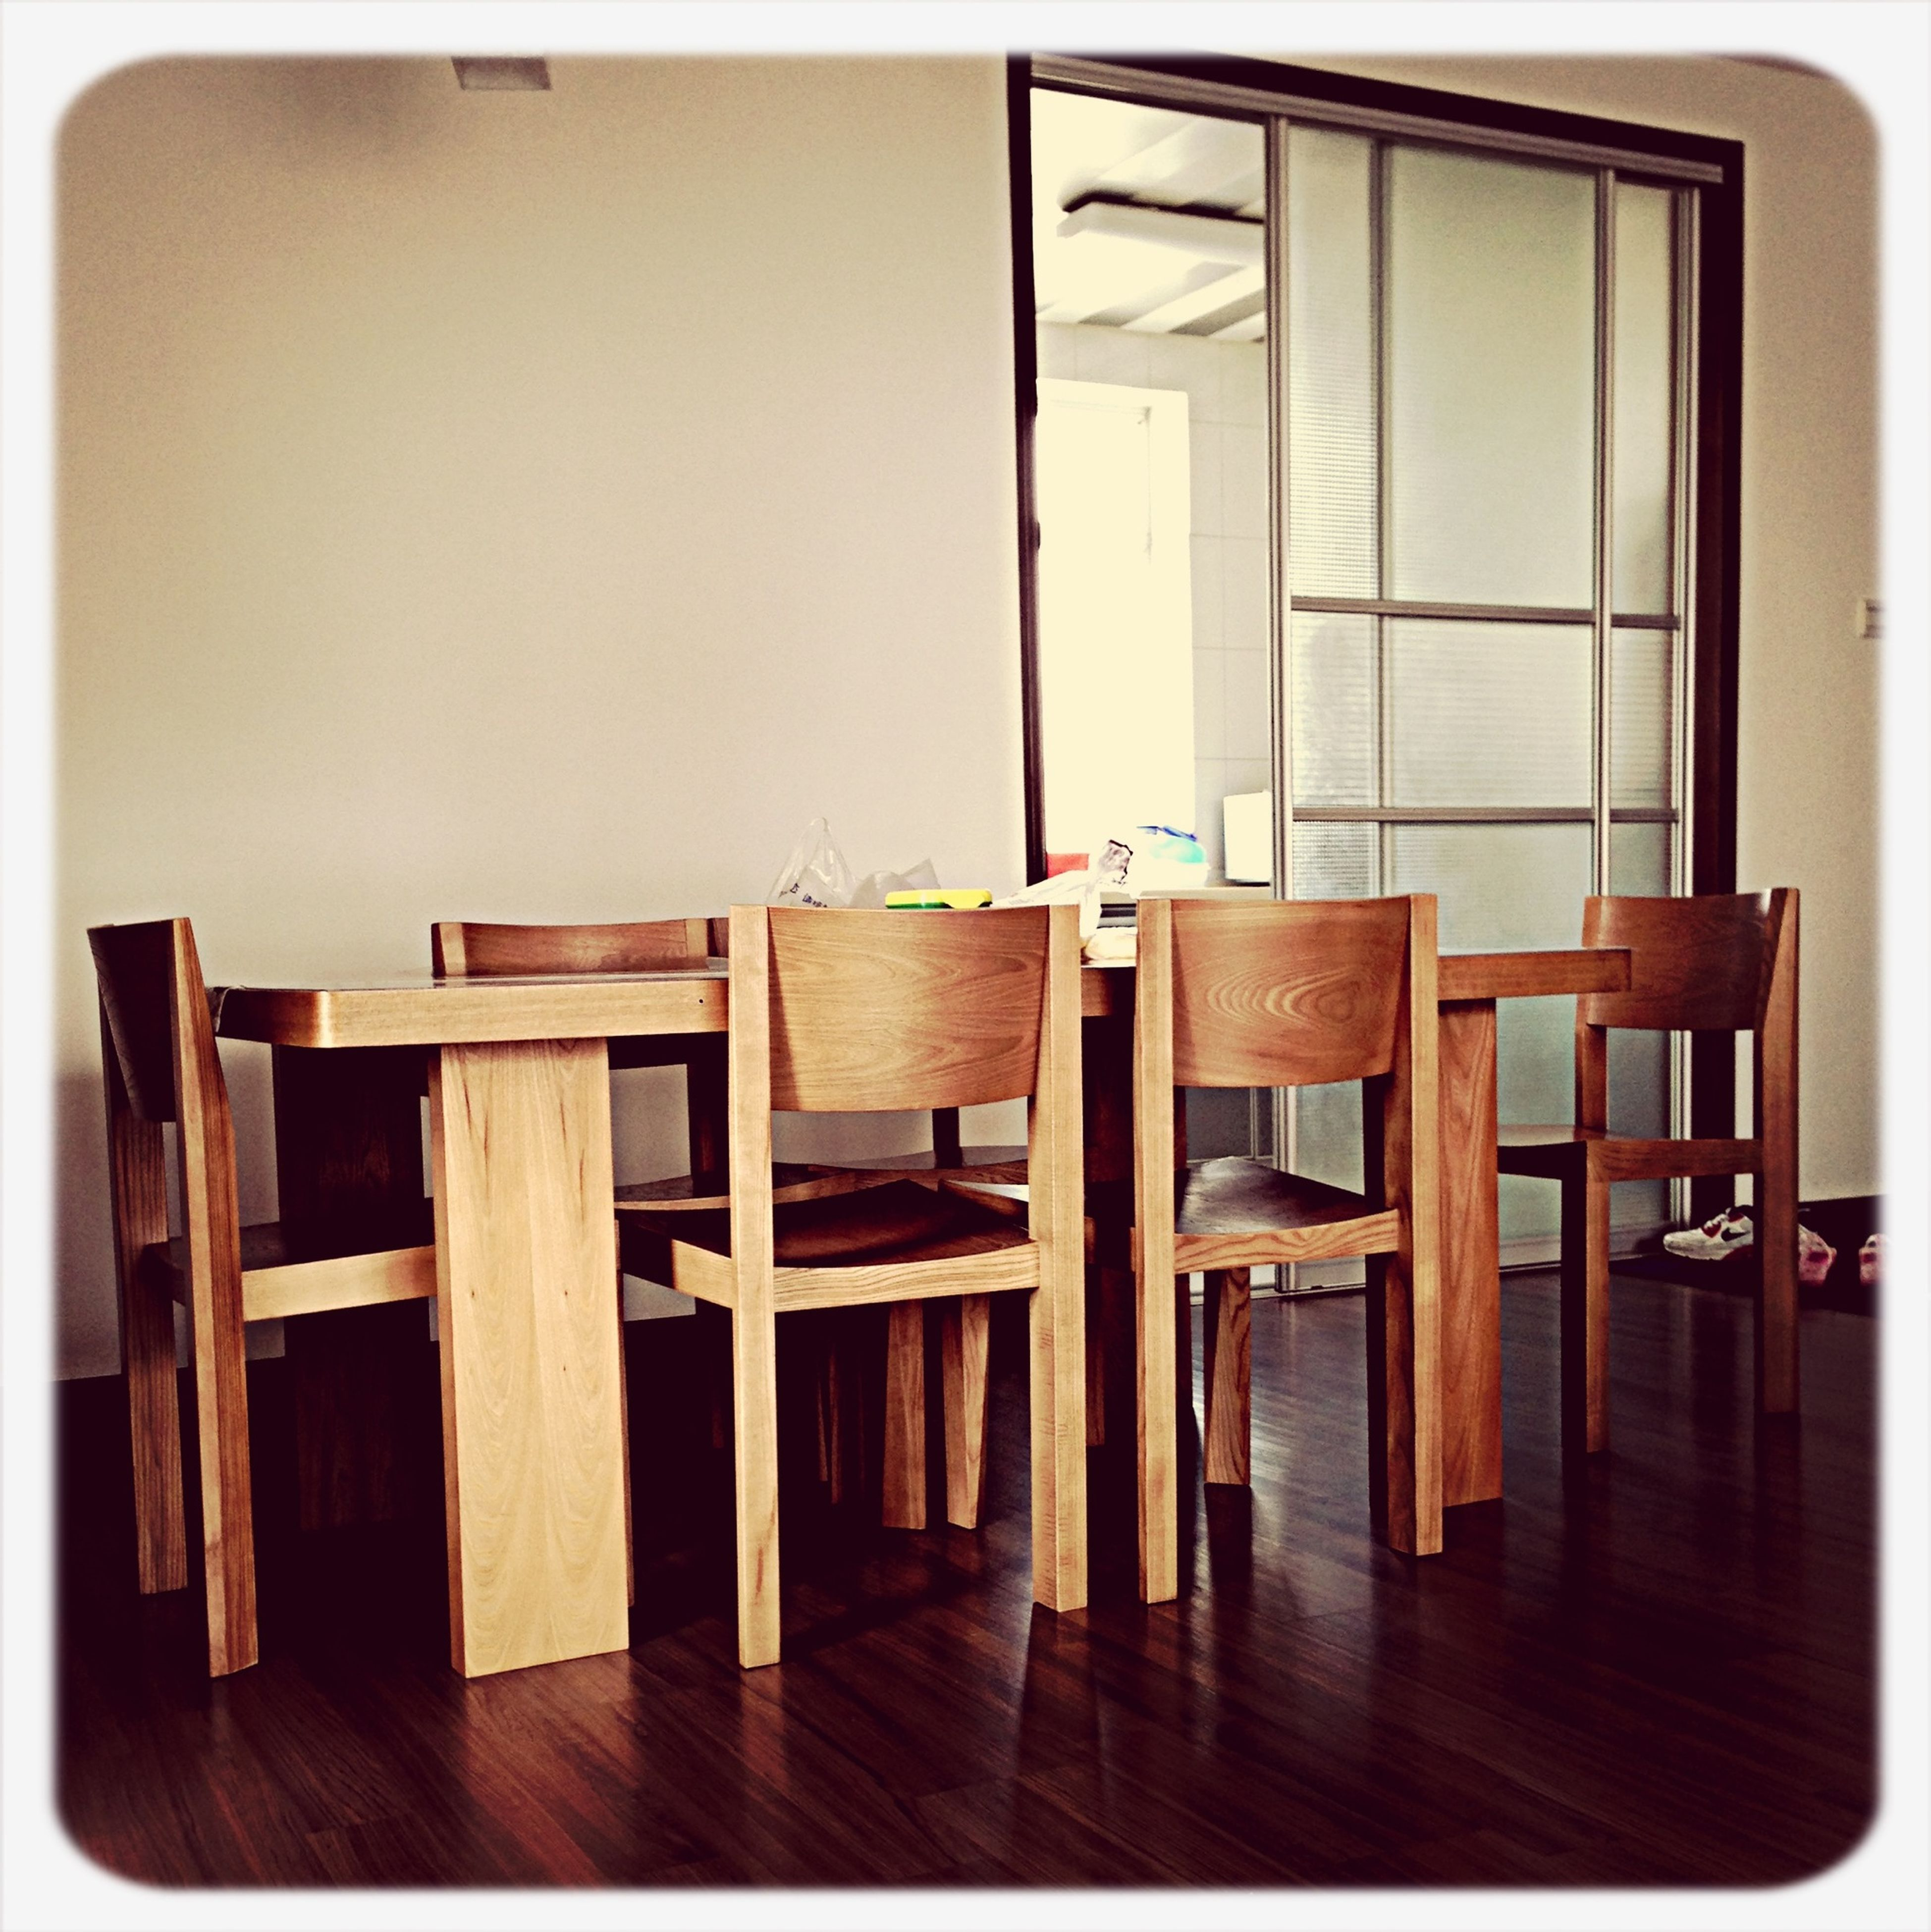 indoors, wood - material, transfer print, table, chair, absence, empty, auto post production filter, wood, furniture, wooden, home interior, built structure, no people, house, architecture, book, hardwood floor, window, day